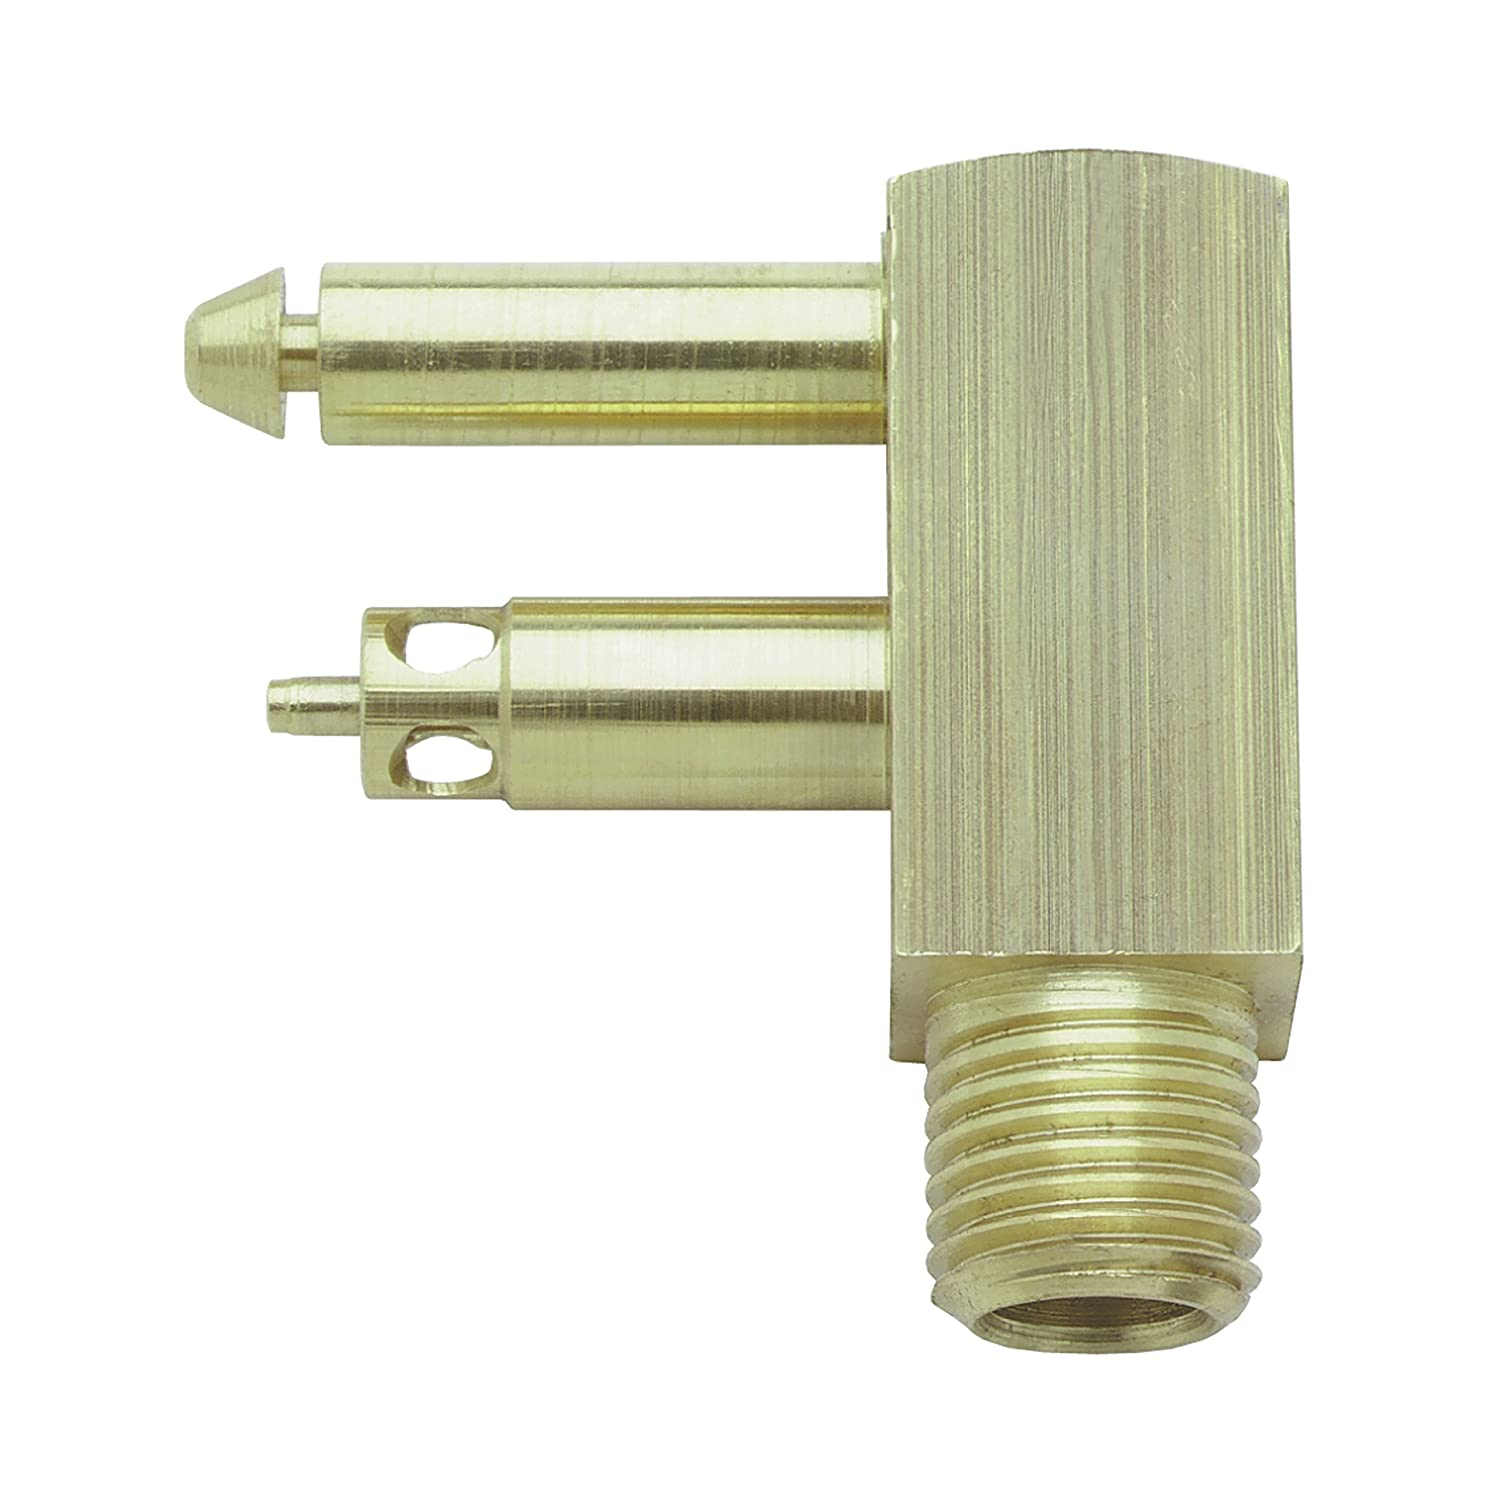 Atwood 8873-6 Quick-Connect Fuel Tank Fitting with 1//4 NPT Thread